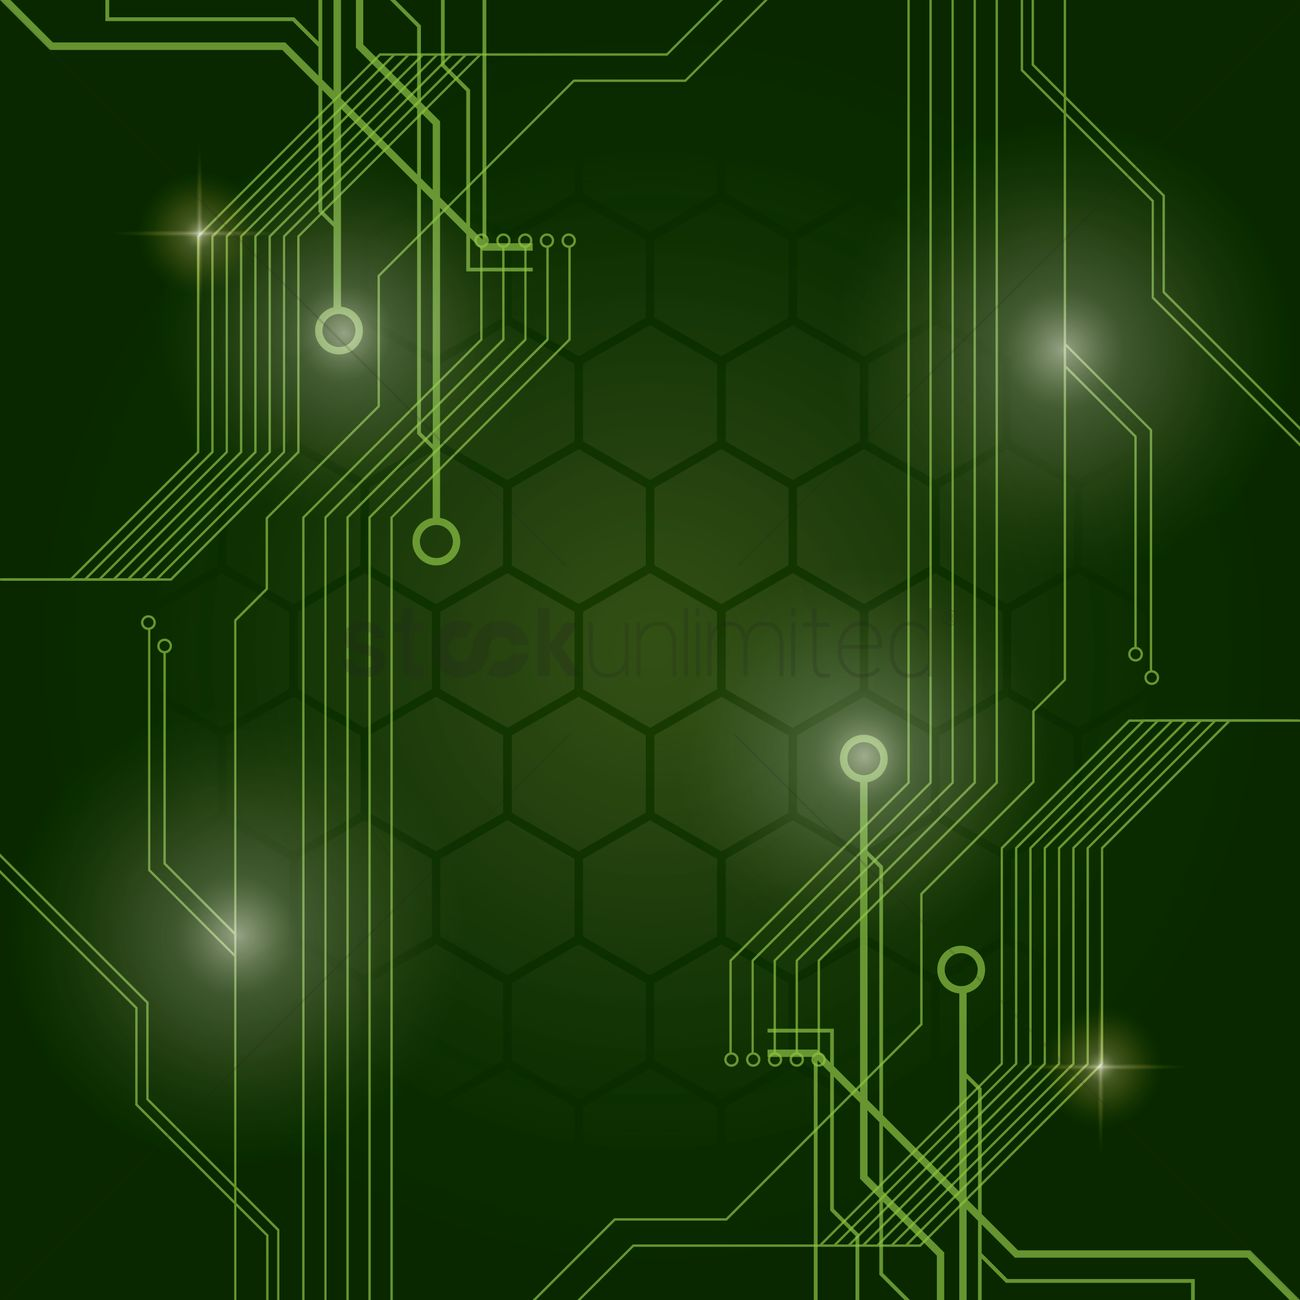 Circuit board design Vector Image - 1647413 | StockUnlimited